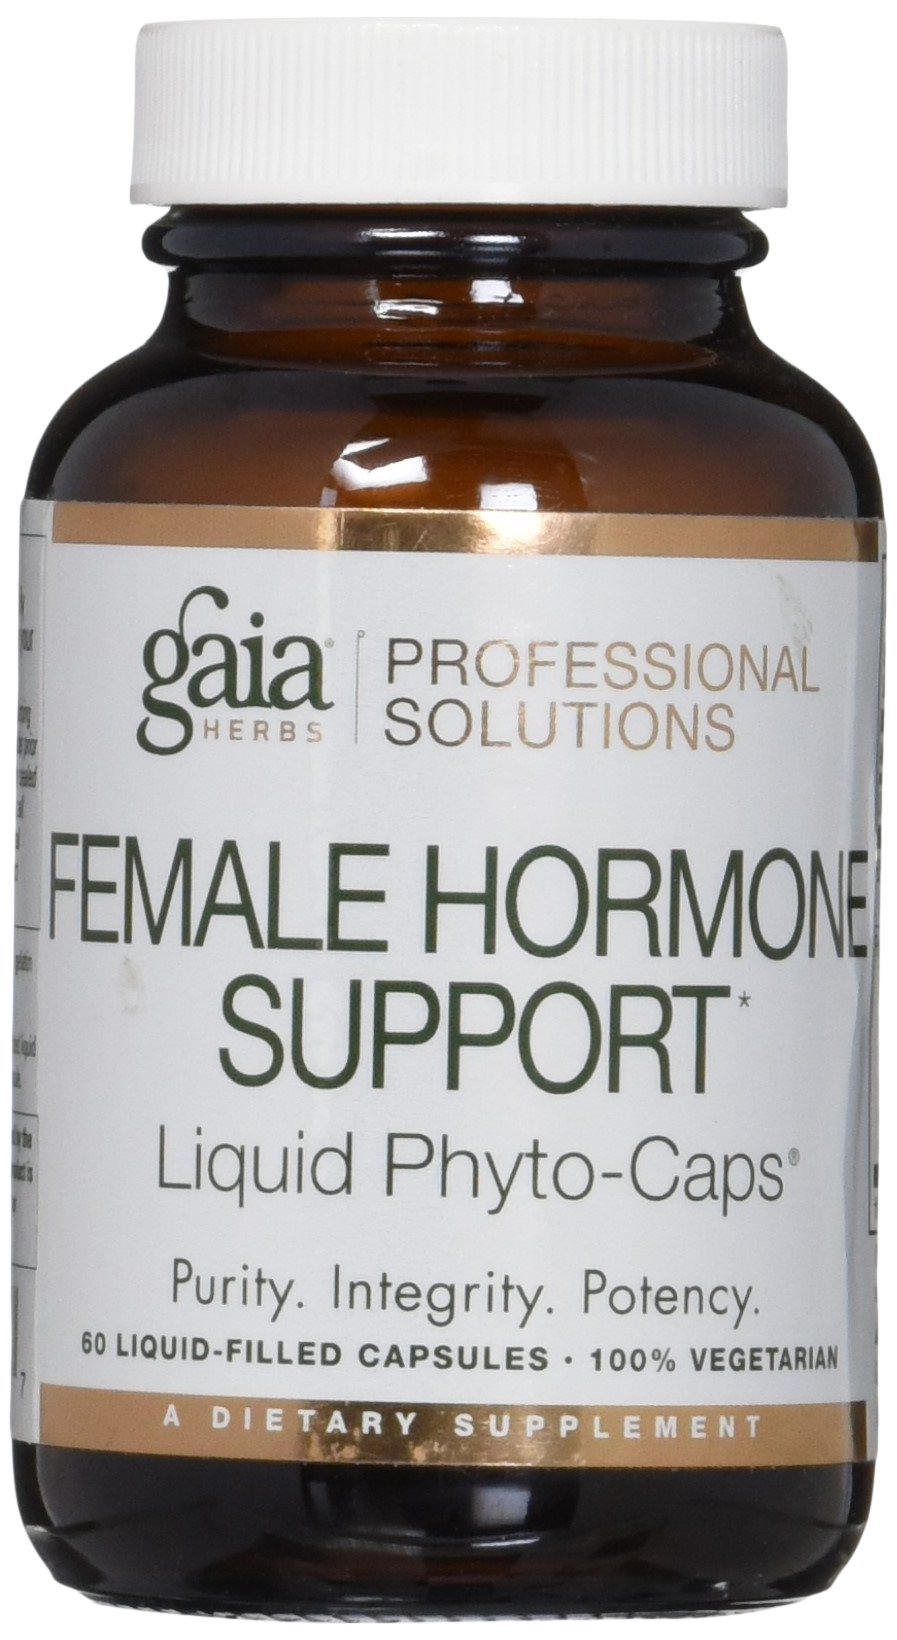 Gaia Herbs (Professional Solutions) Female Hormone Support 60 lvcaps by Gaia Herbs/Professional Solutions (Image #1)